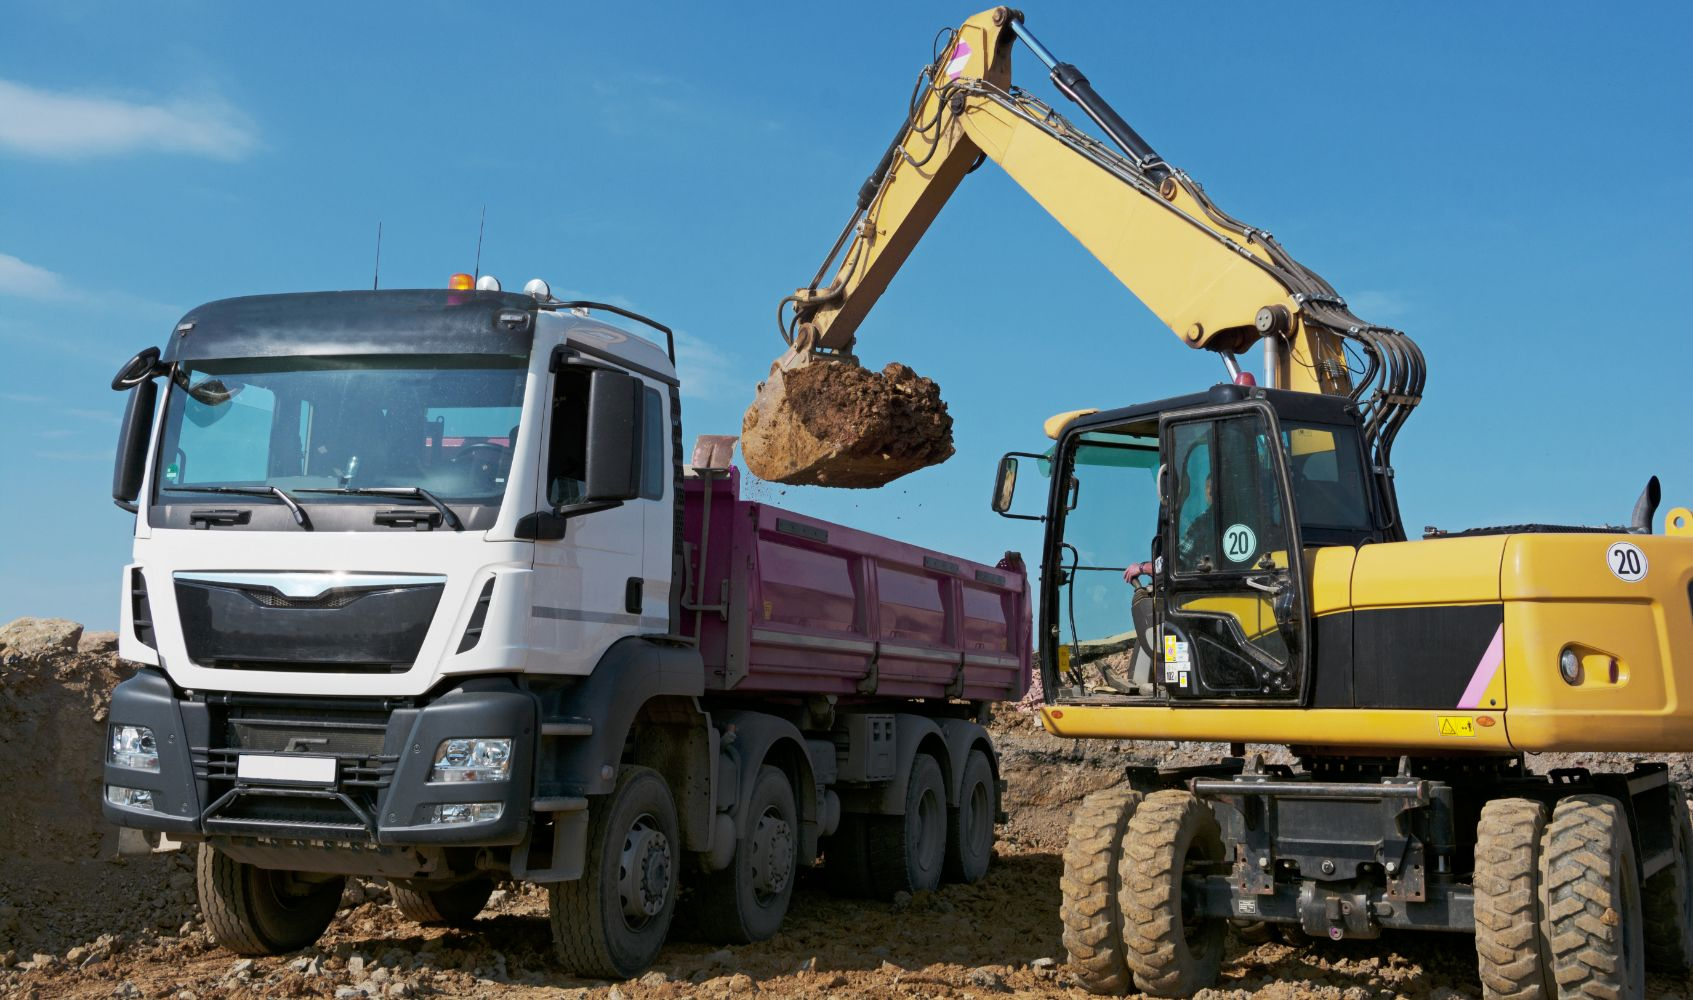 NOW WEEKLY!! EVERY THURSDAY OF THE YEAR! Plant, Machinery & Commercial Vehicle Auction With Lots Direct from Councils, Hire Companies and More